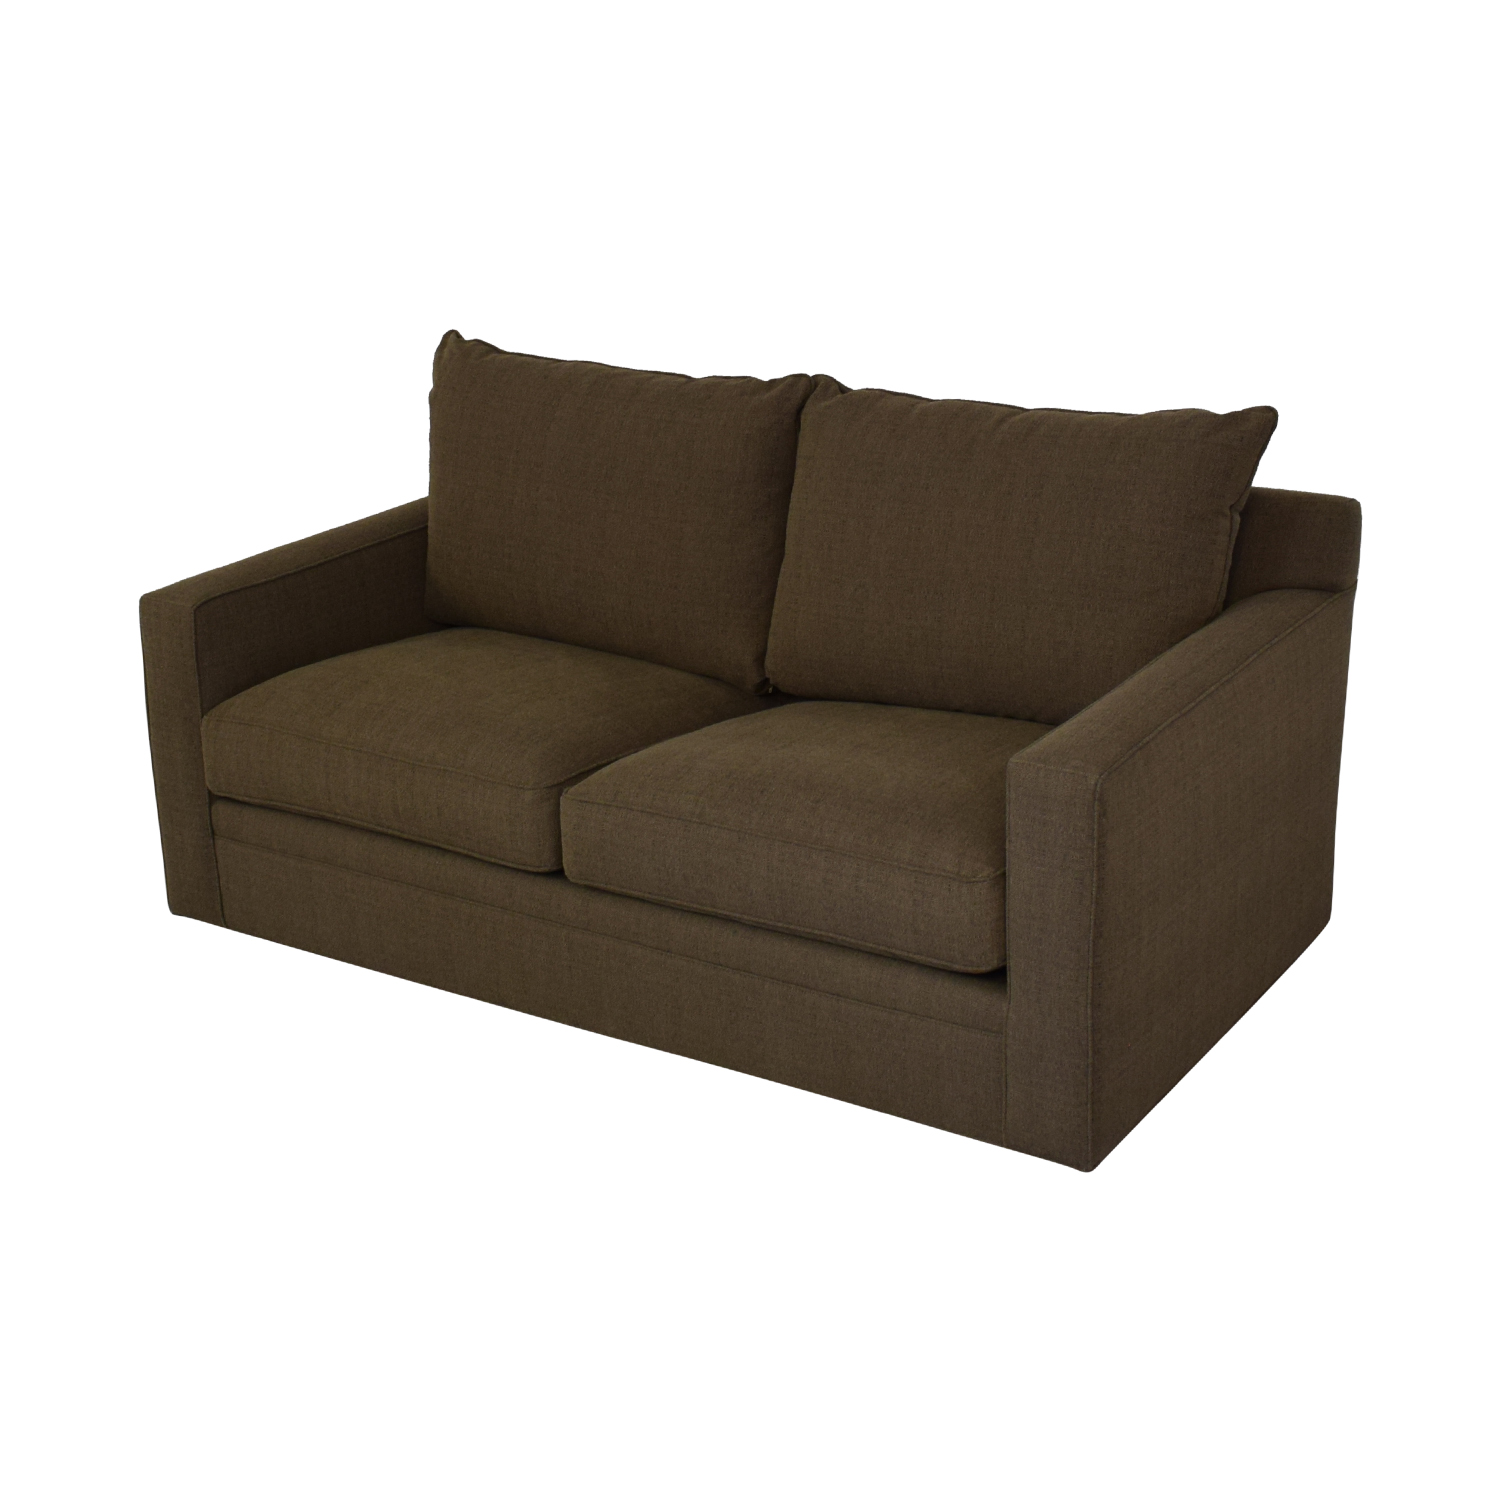 Room & Board Room & Board Orson Guest Select Sleeper Sofa Sofa Beds